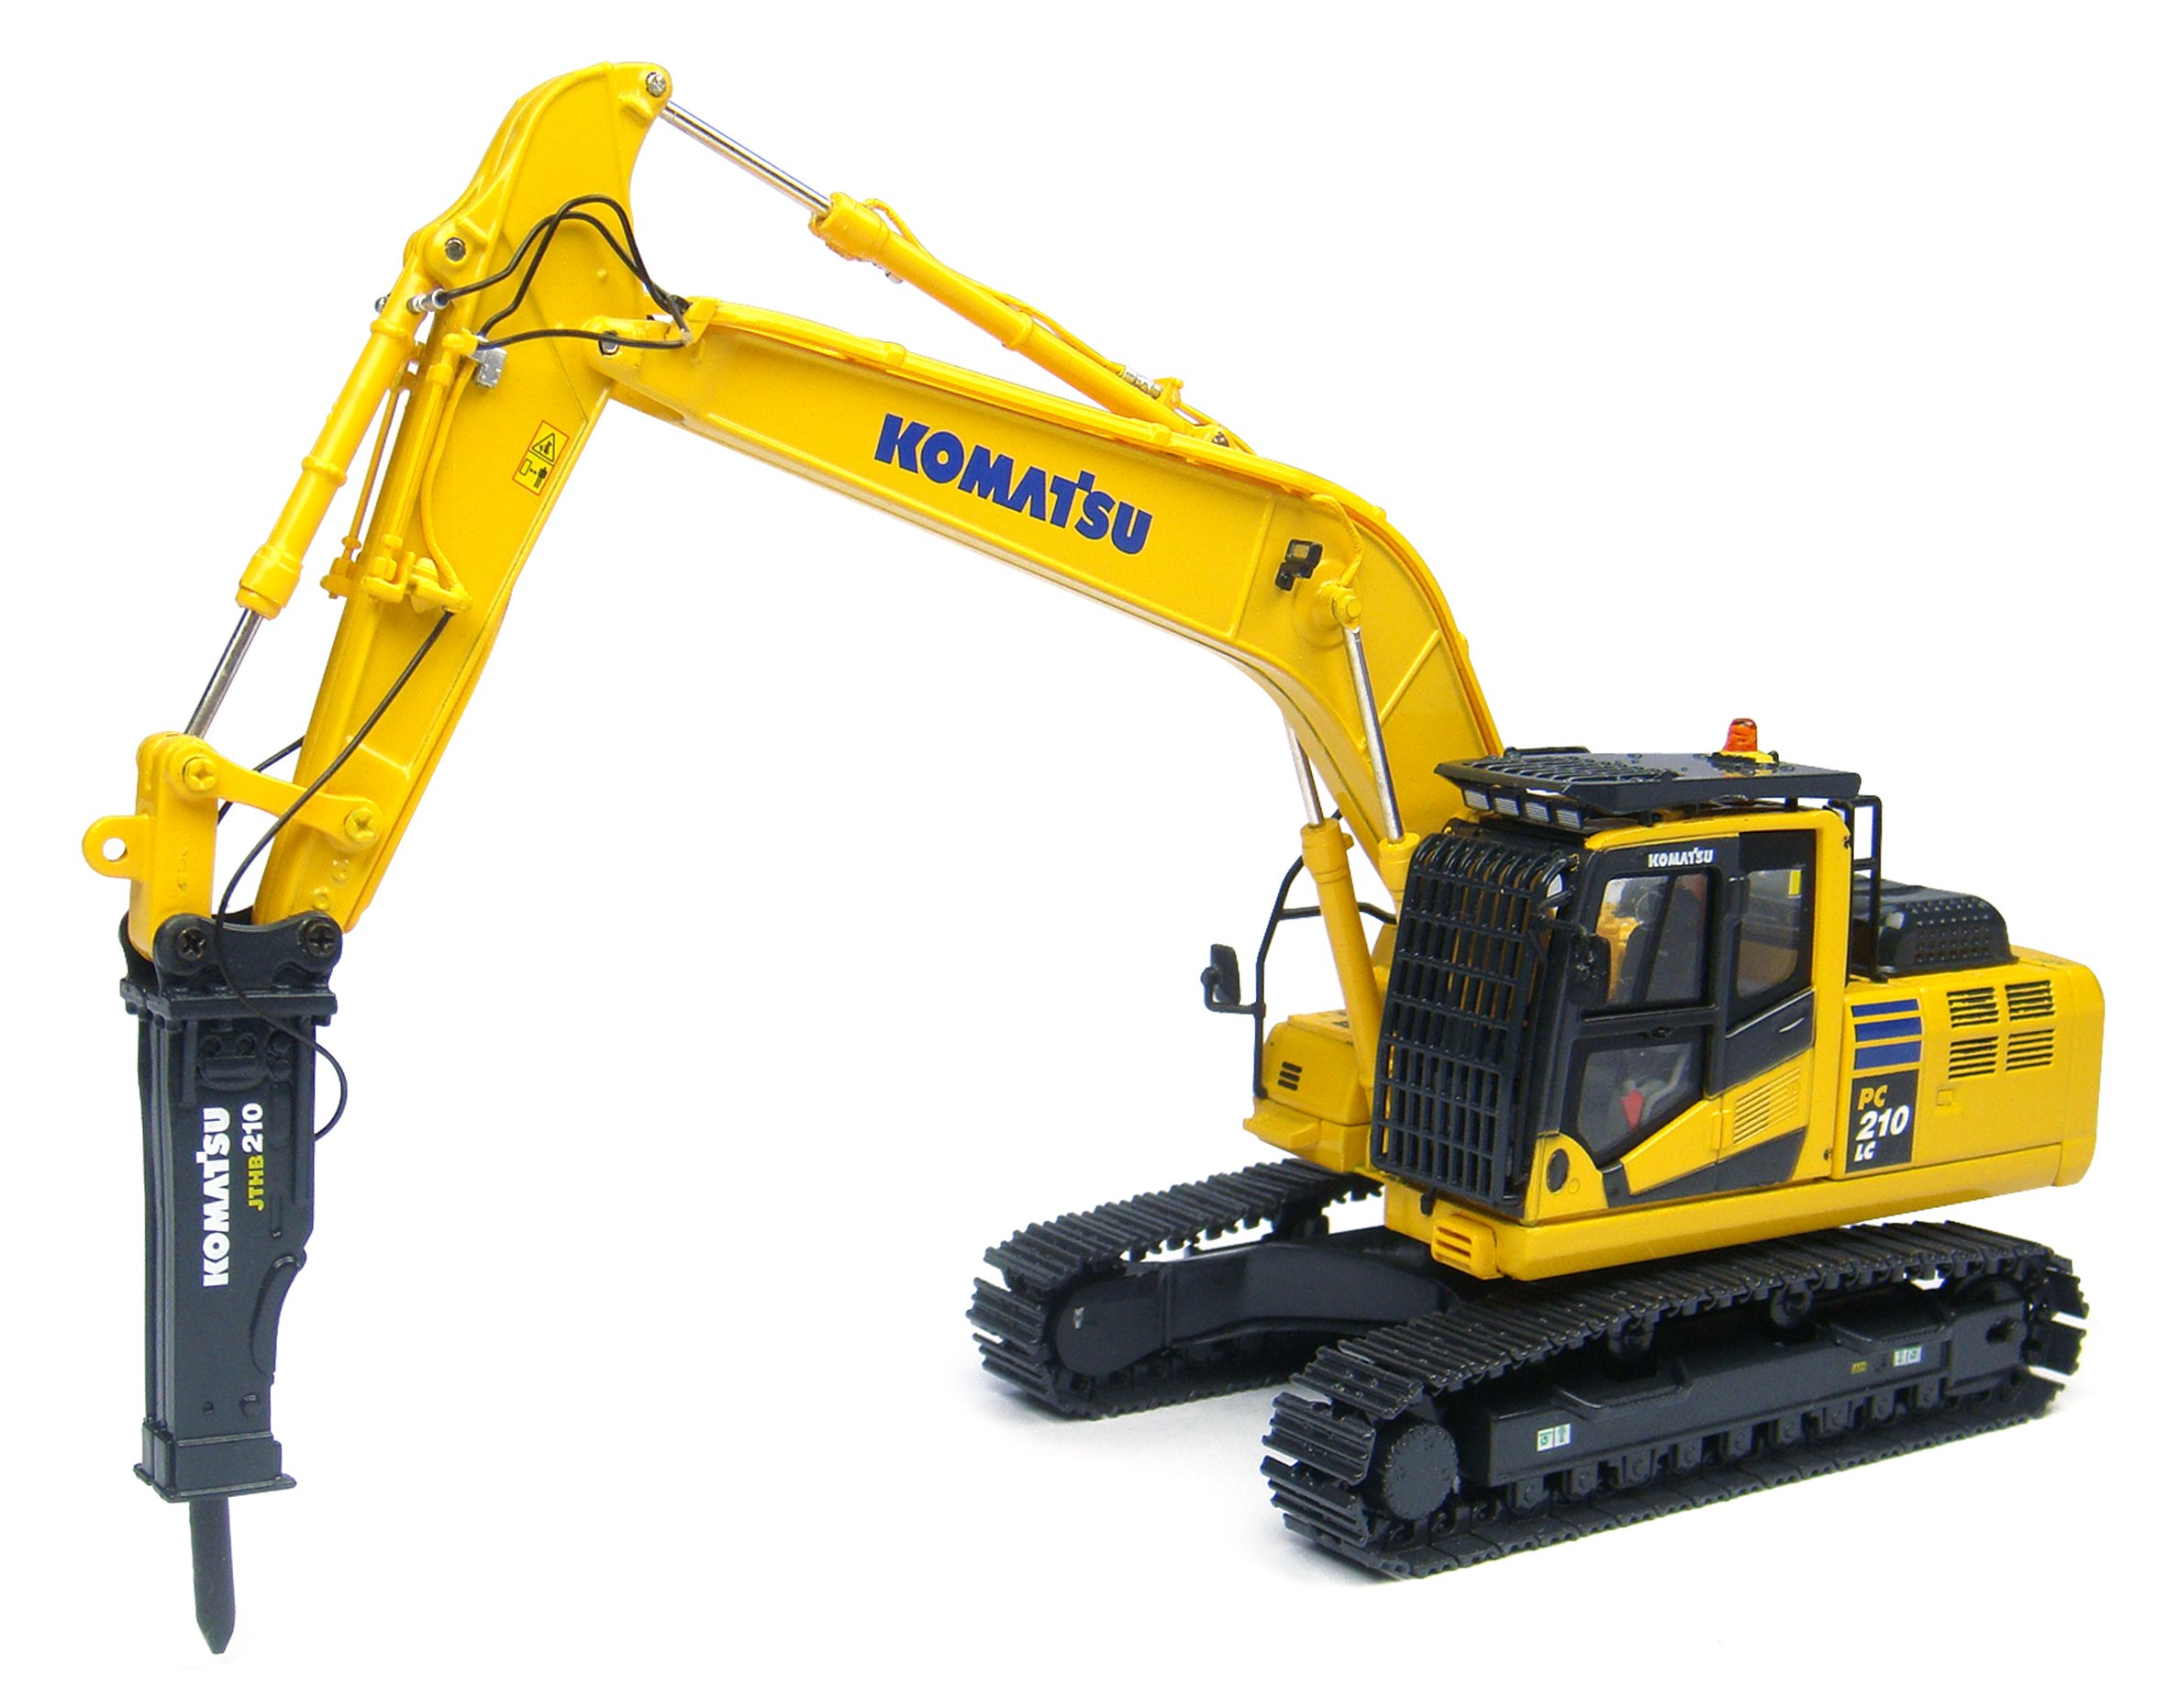 Universal Hobbies Modell 1: 50 Komatsu Excavator Model Helicopter PC 210LC 10 with Hydraulic Hammer 8096